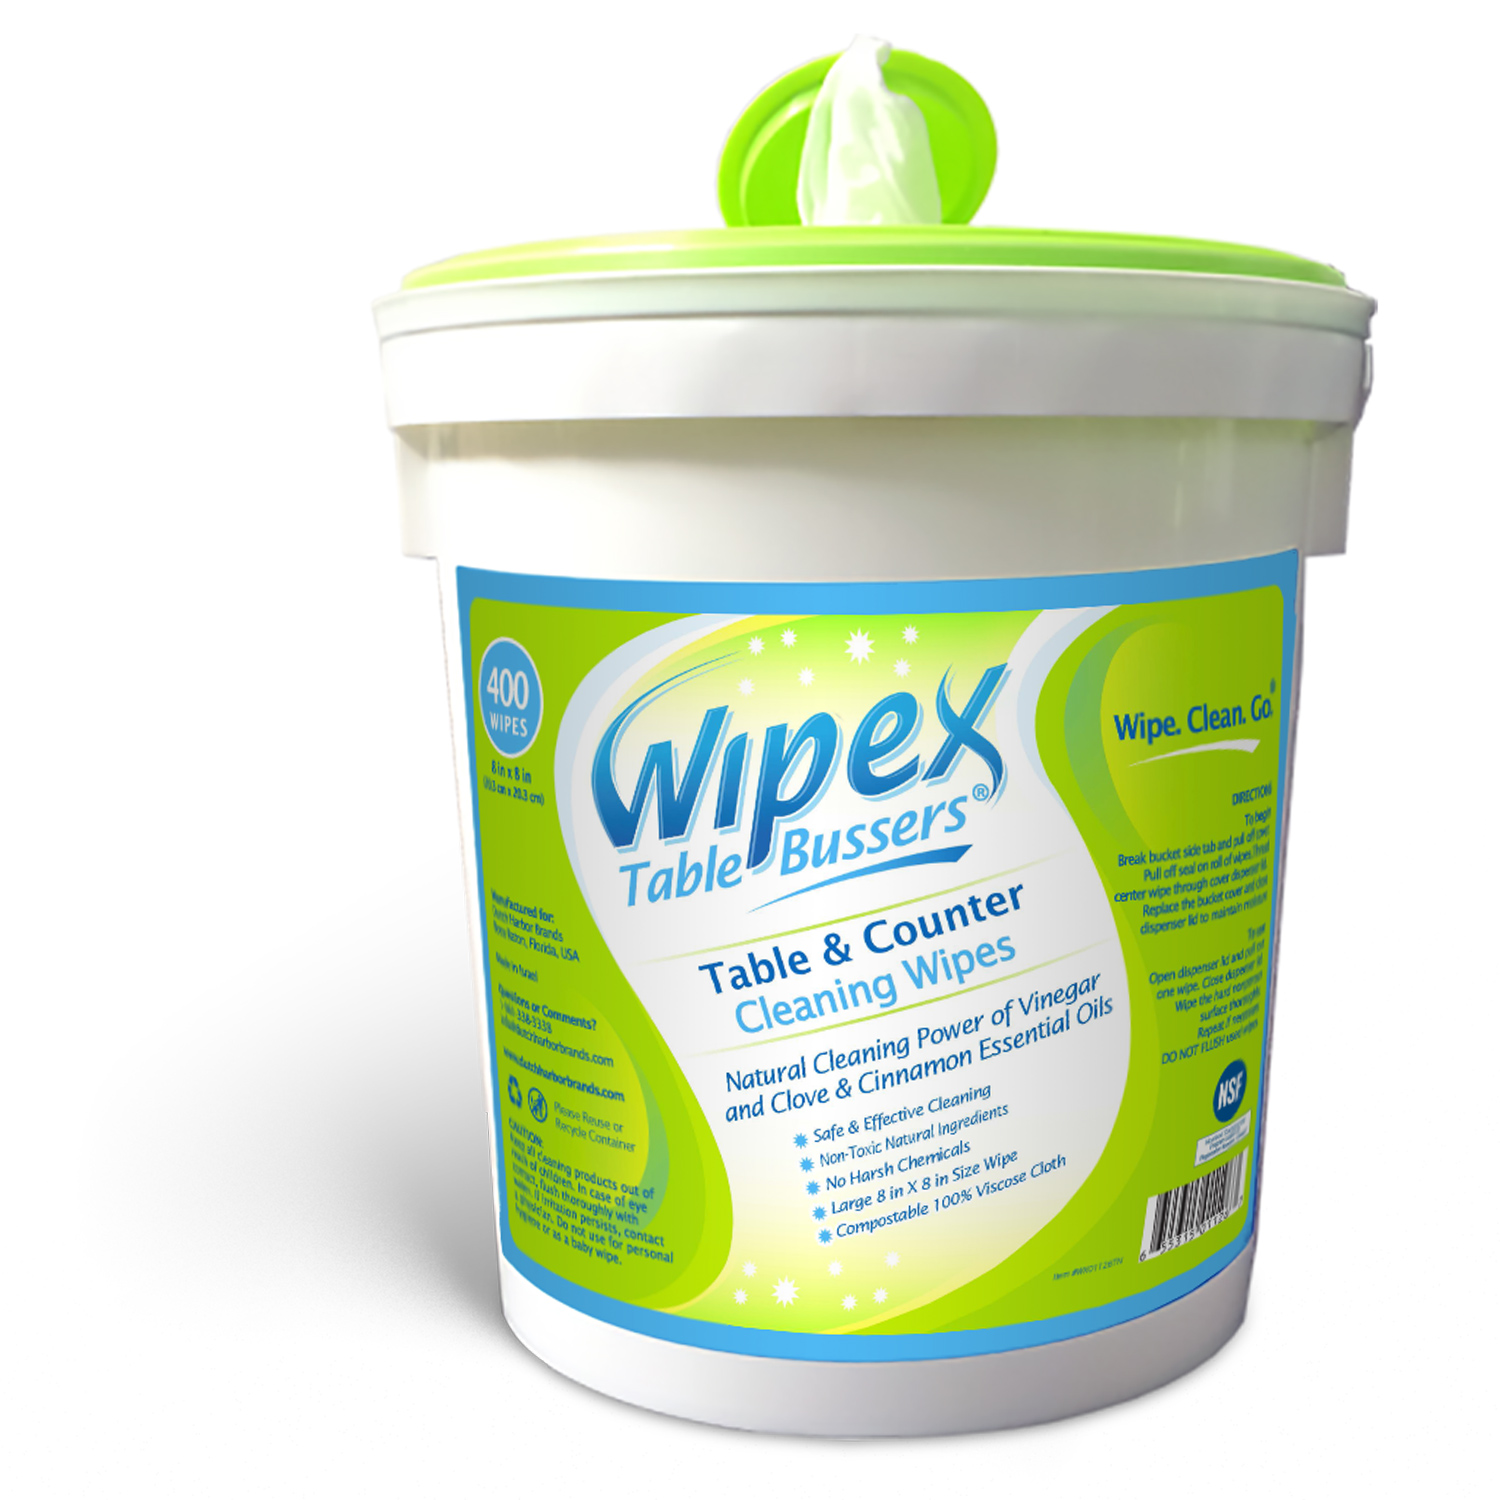 Wipex Table Bussers - Natural Table & Counter Cleaning Wipes with Vinegar, Propolis, Clove and Cinnamon Oil, 400 Count